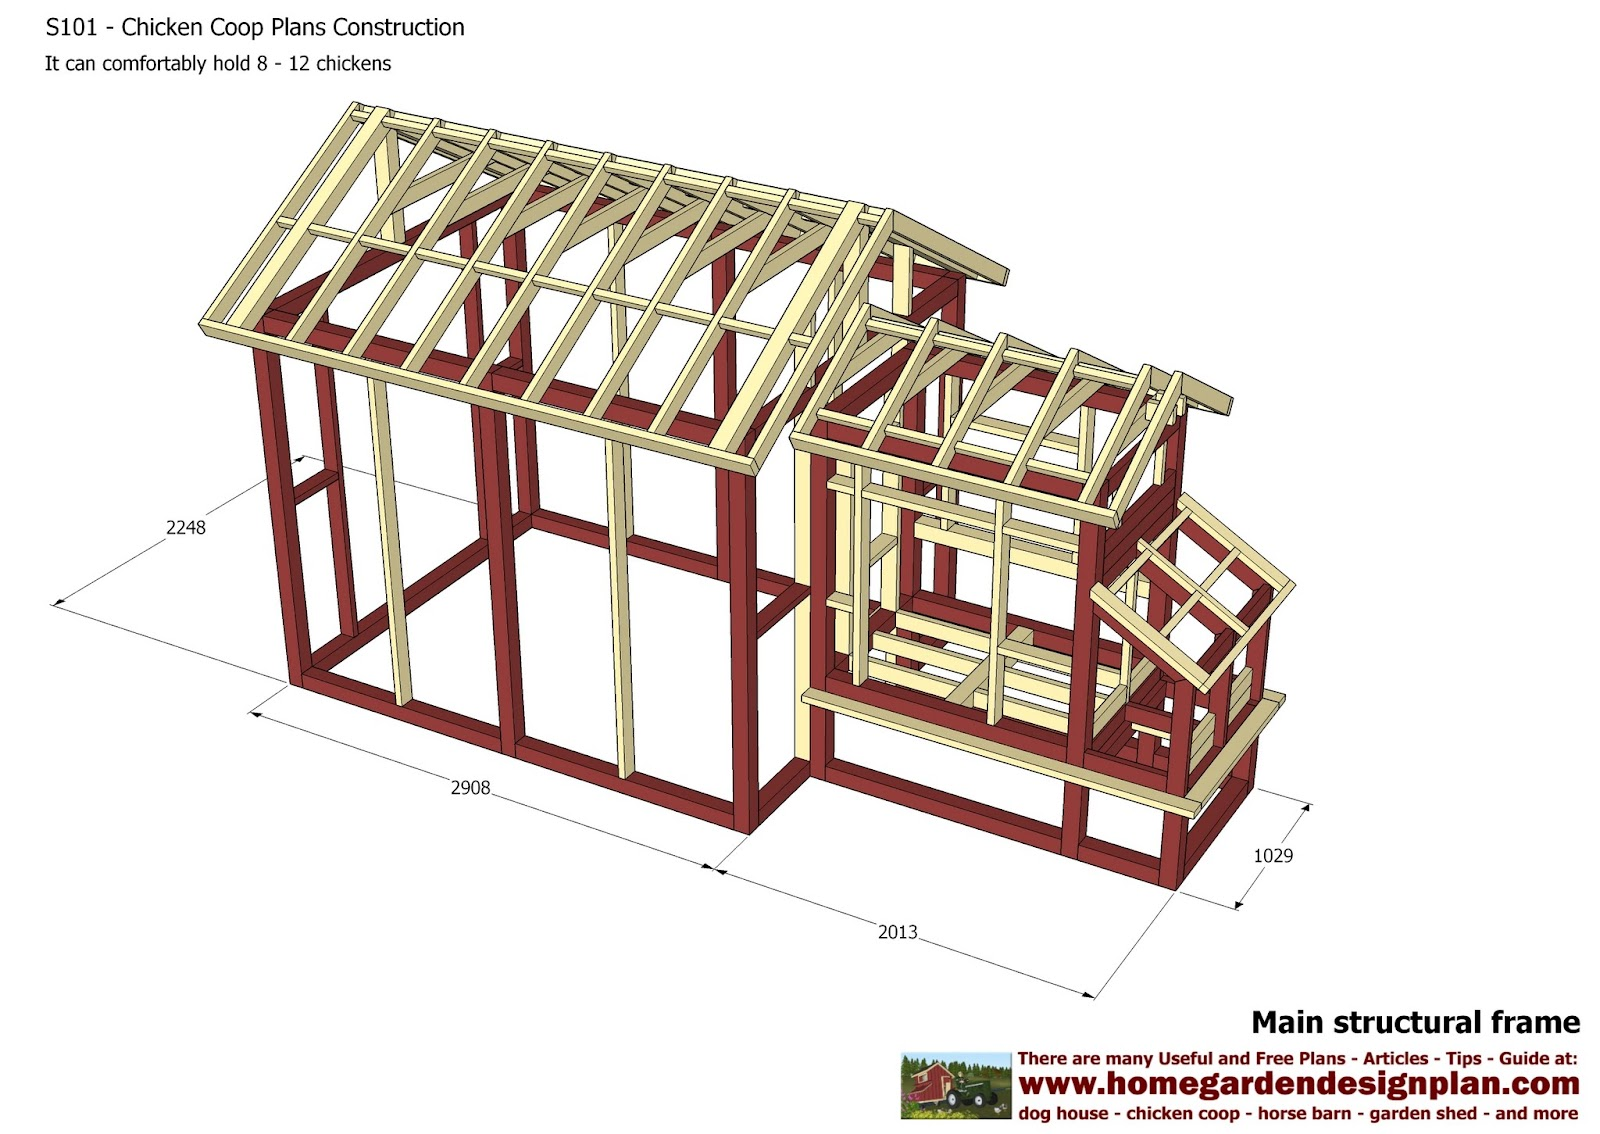 Home garden plans s101 chicken coop plans construction for House construction plans